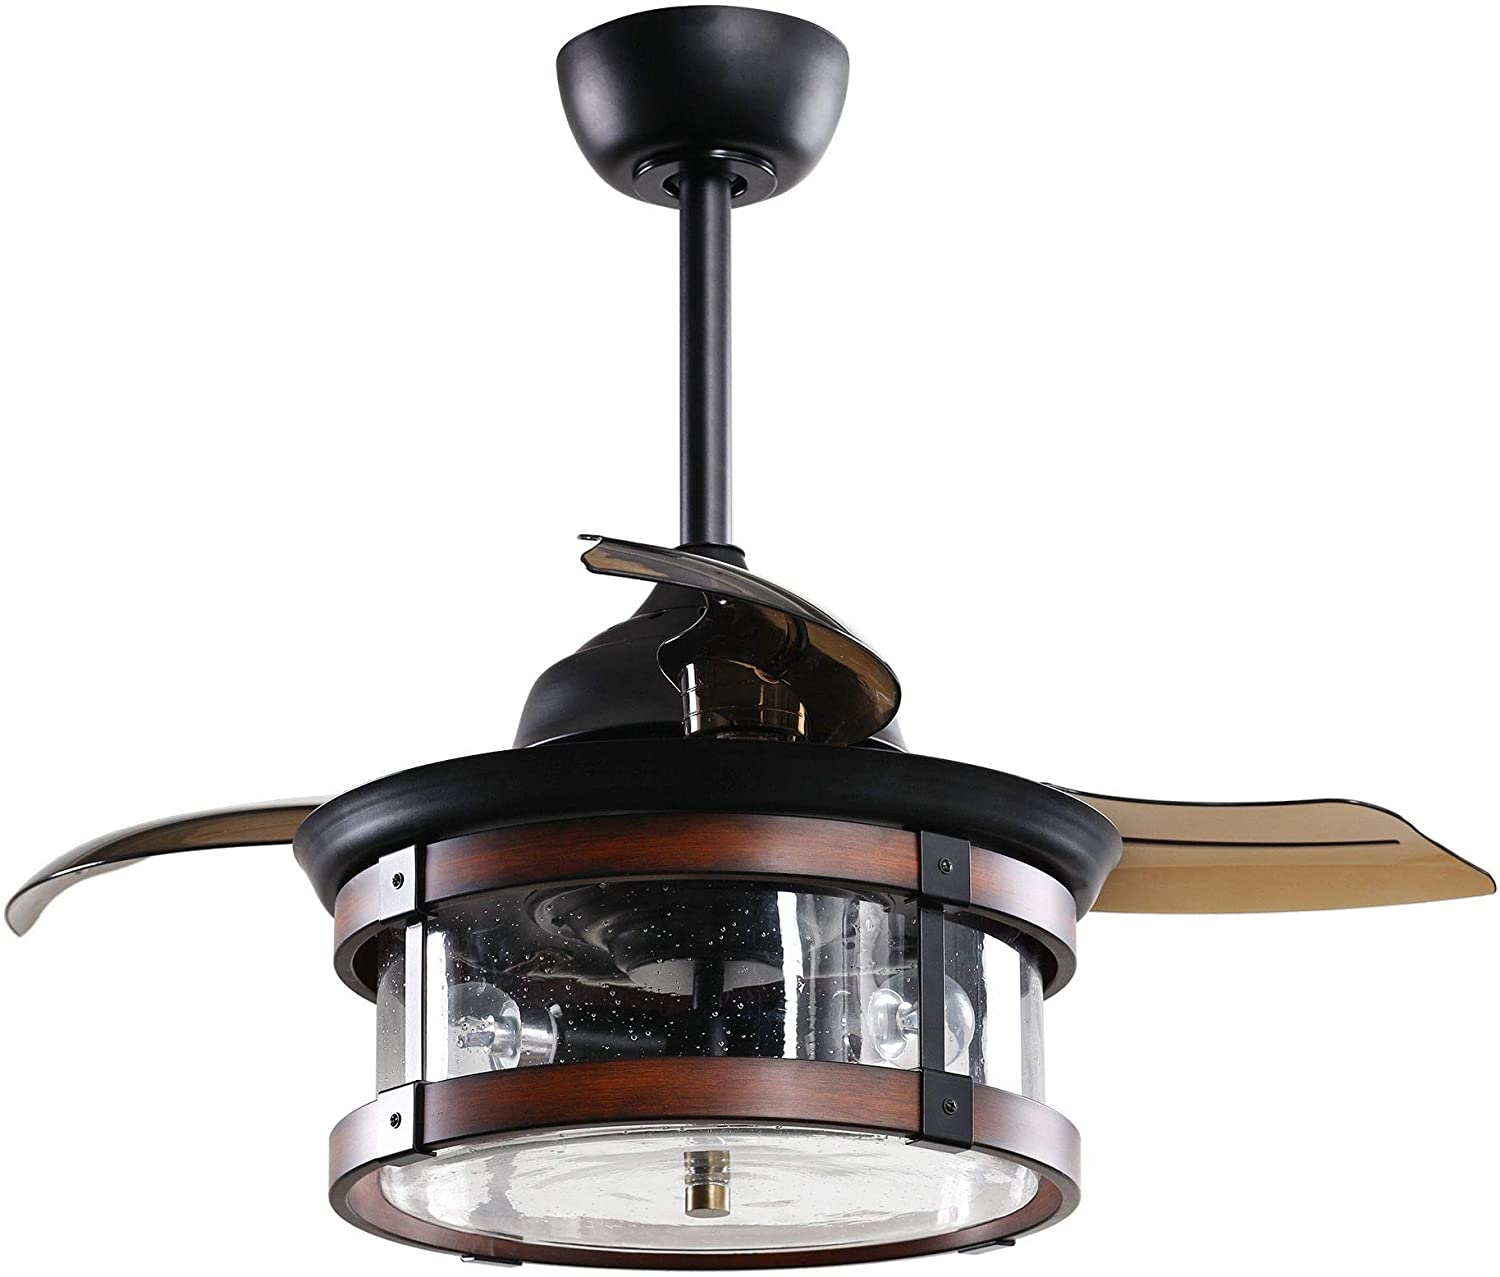 36 Inch Invisible Ceiling Fan with Lights Remote Control Vintage Chandelier Ceiling Fan with Retractable 3 Blades Glass Shade, 3 Bulbs EXCLUDED, Oil Rubbed Bronze